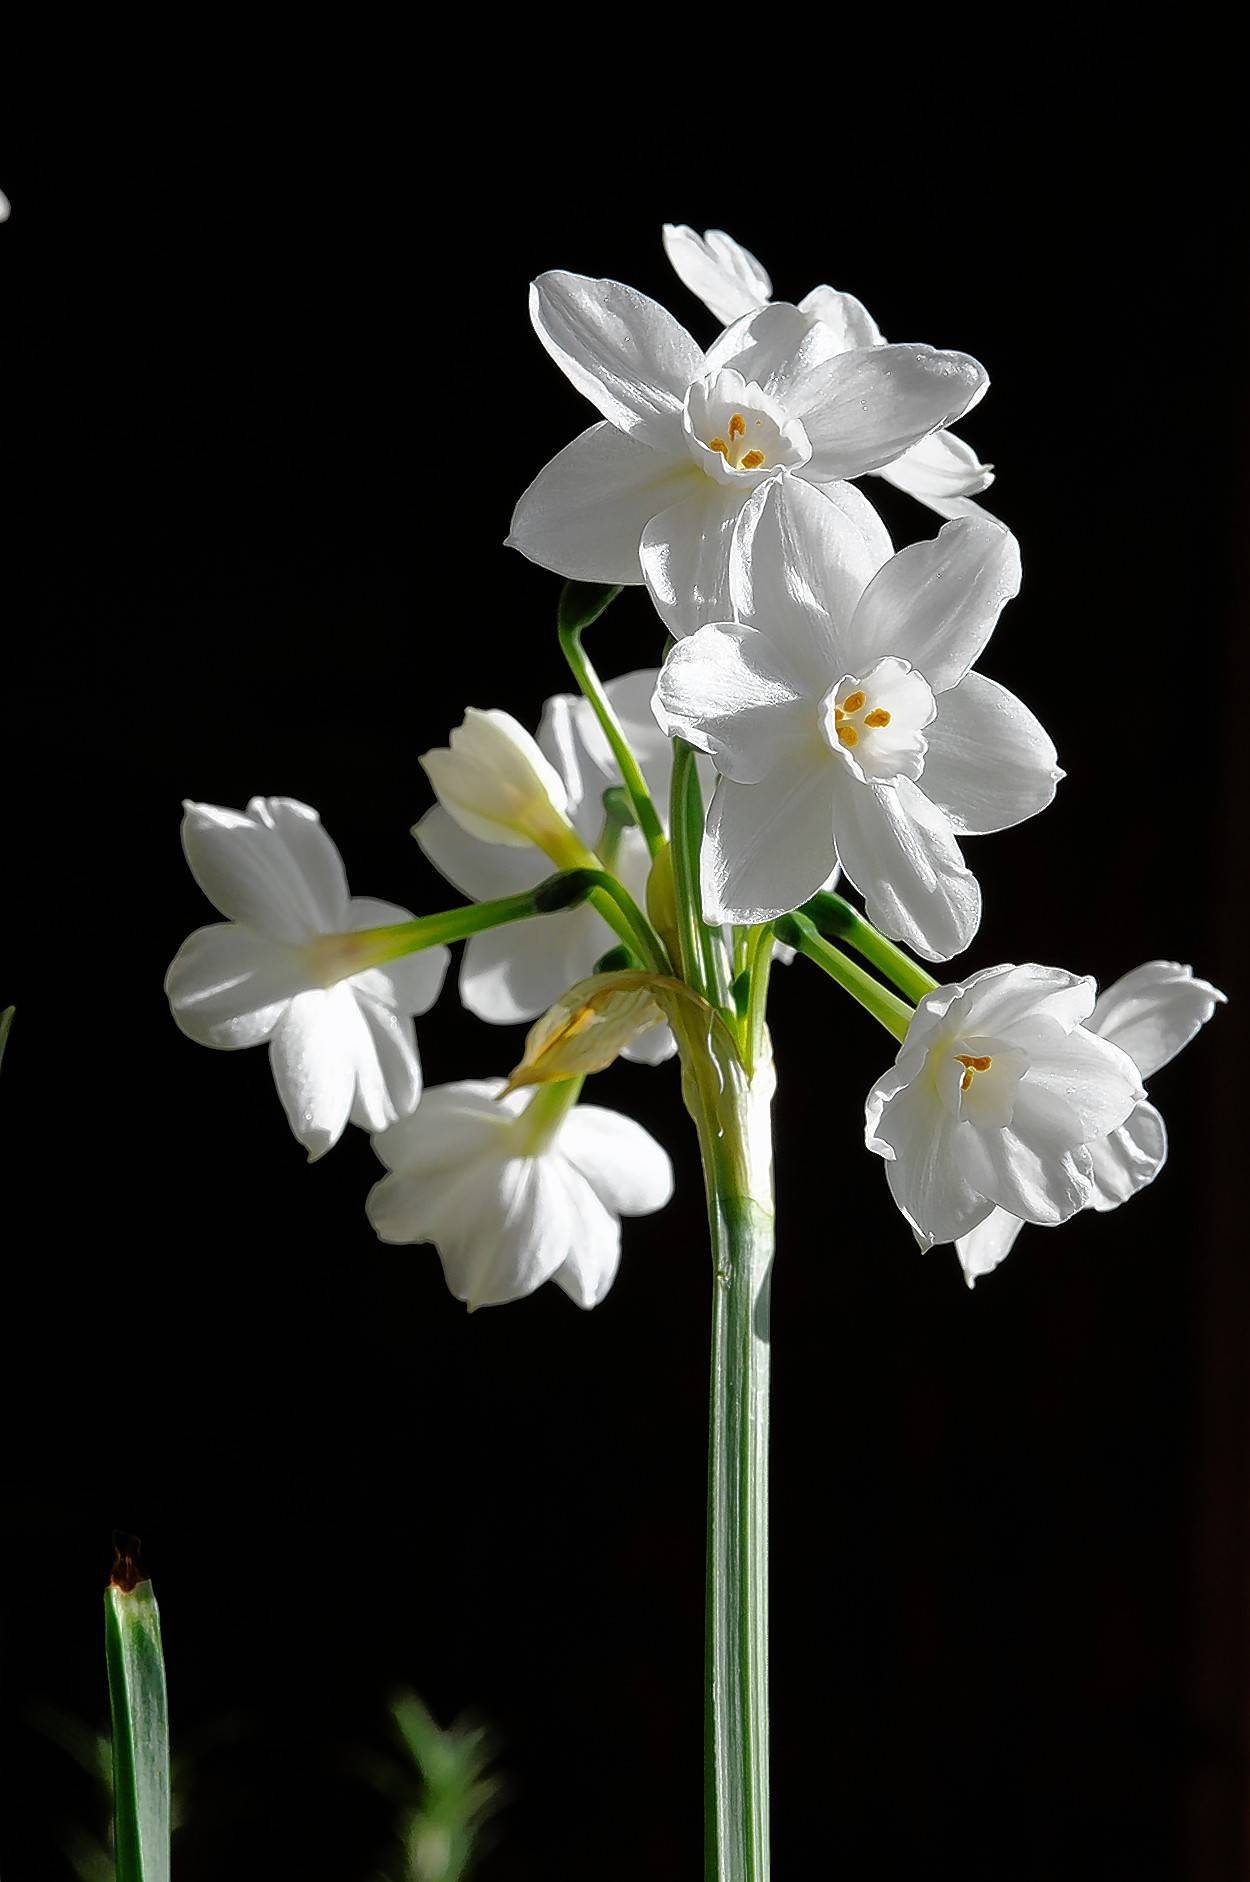 Paperwhite narcissus can be grown in a pot indoors with bright light.